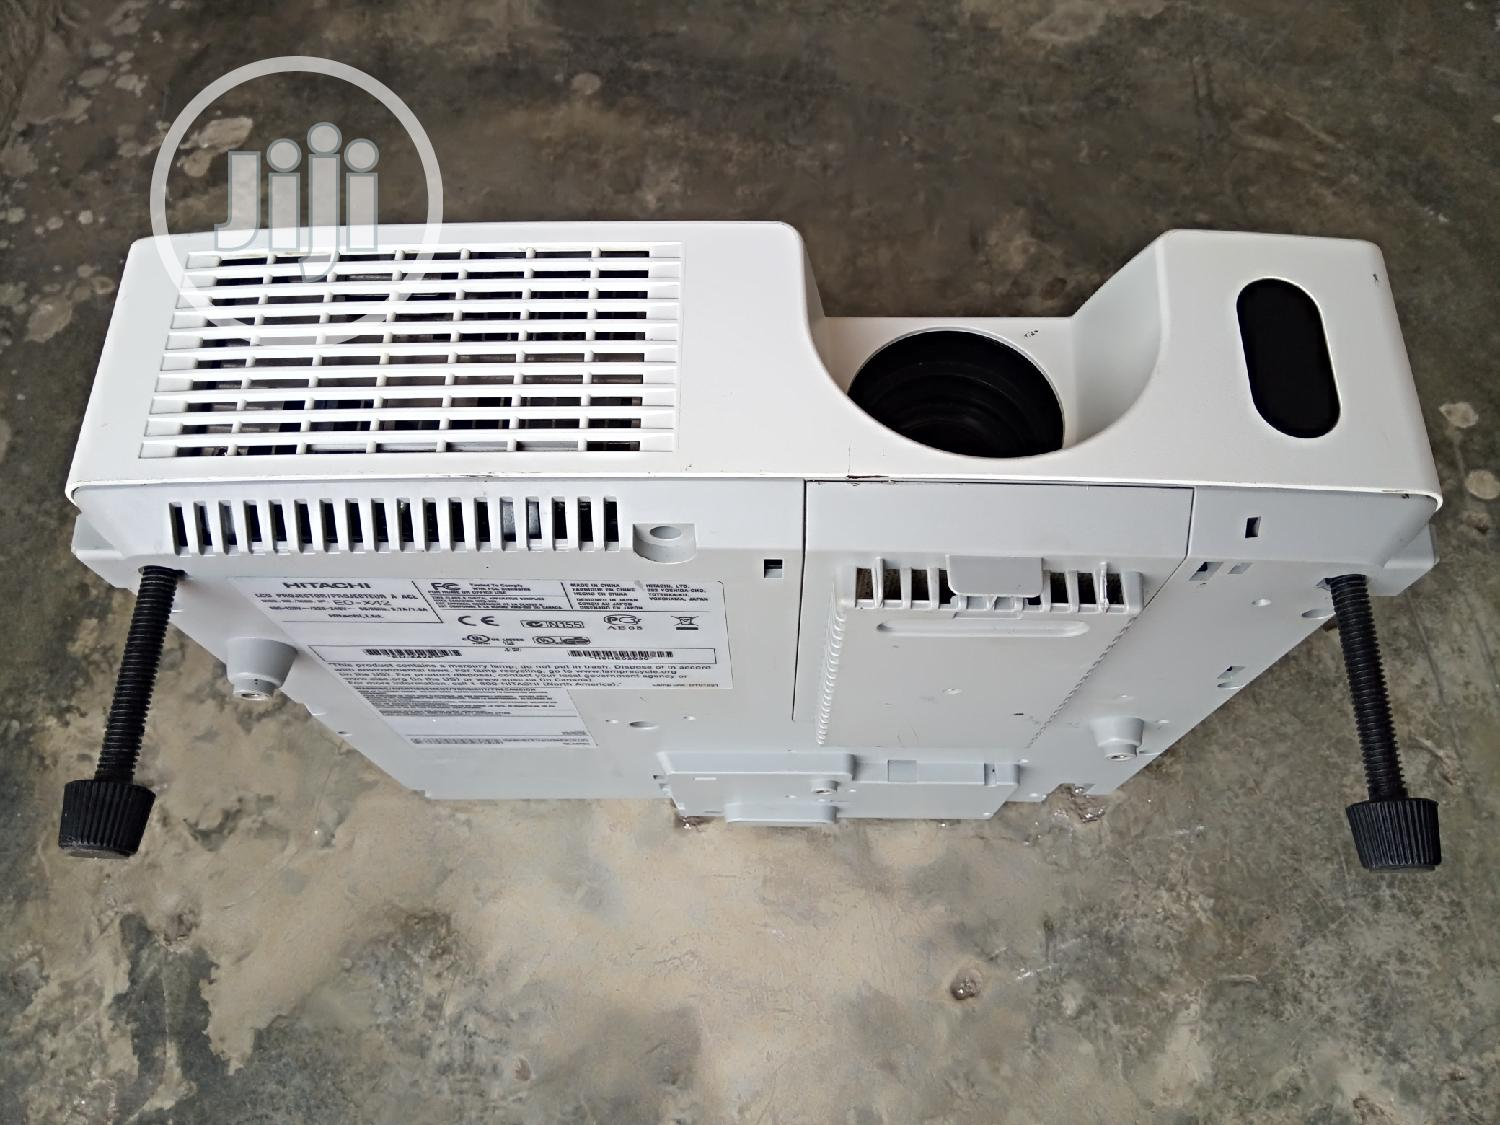 Daylight Hitachi Projectors With Large Image | TV & DVD Equipment for sale in Brass, Bayelsa State, Nigeria